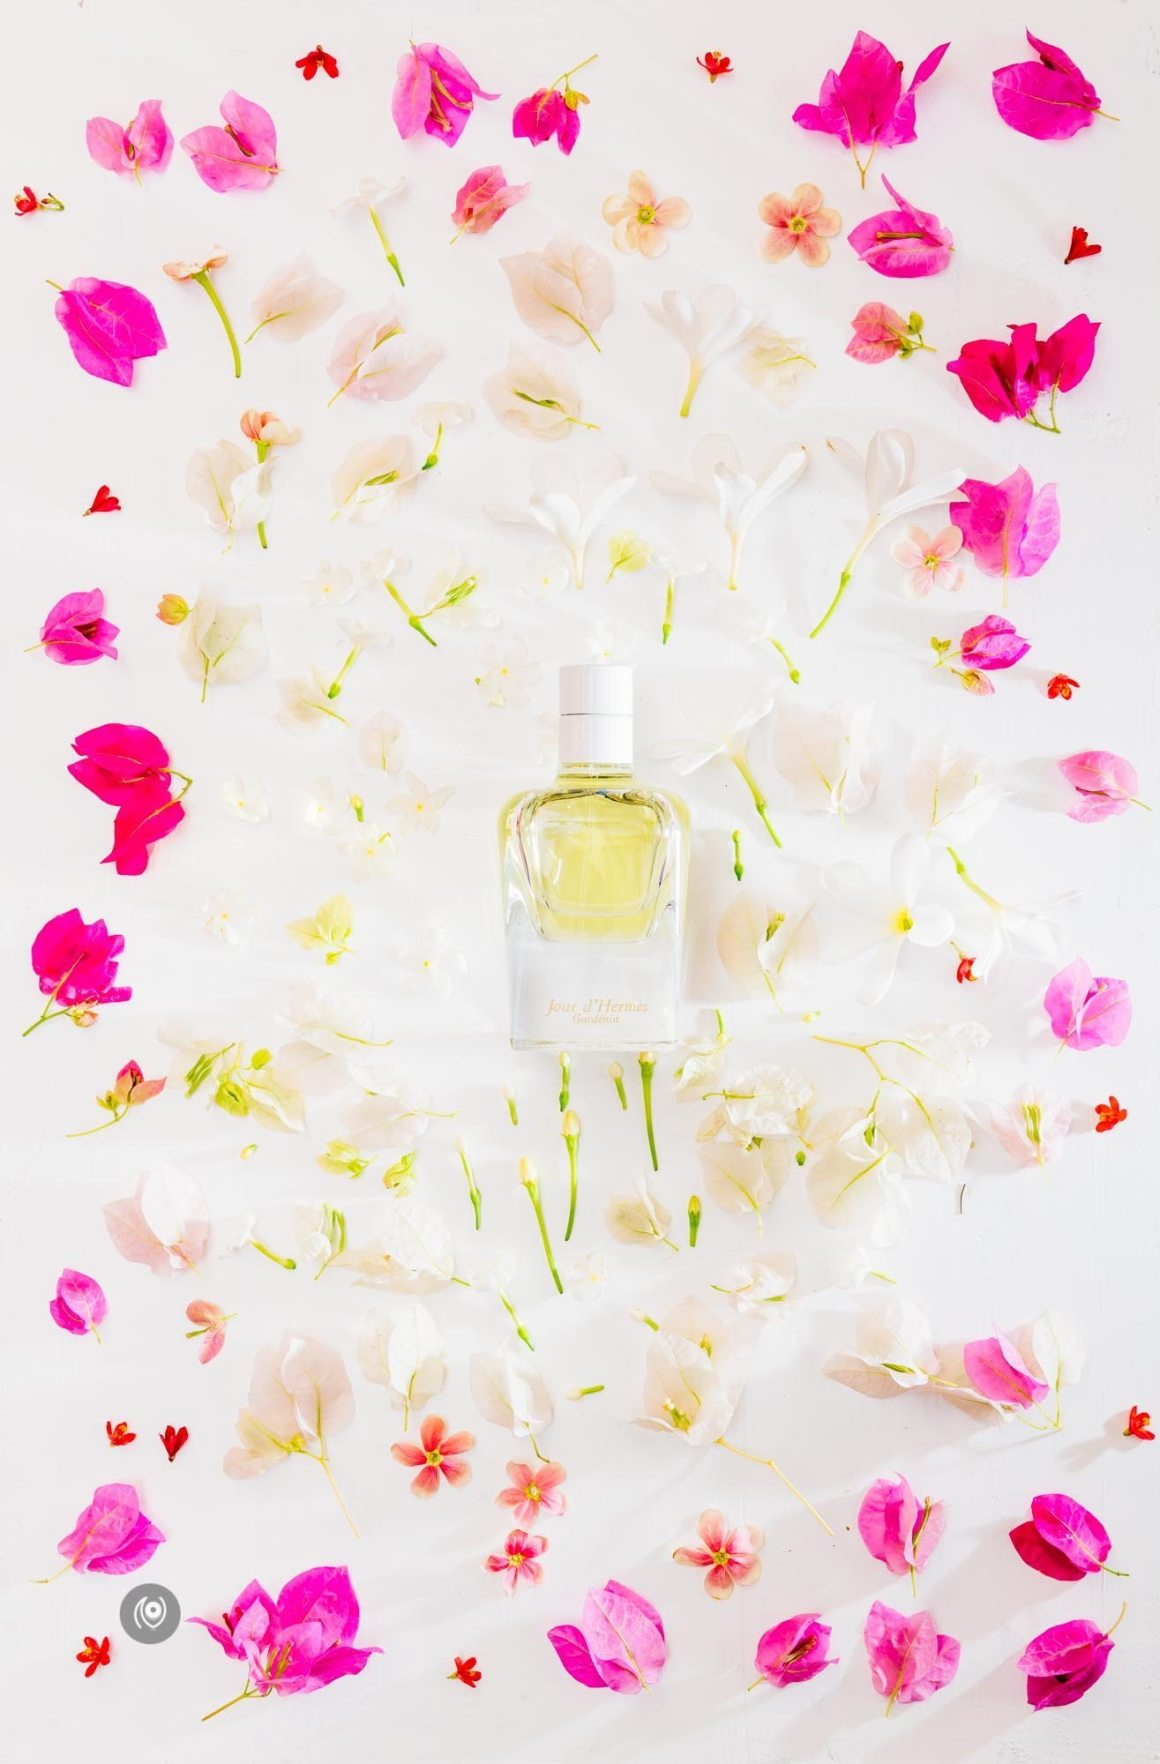 FragranceOfTheMonth-Naina.co-Jour-Hermes-Gardenia-EyesForLuxury-03